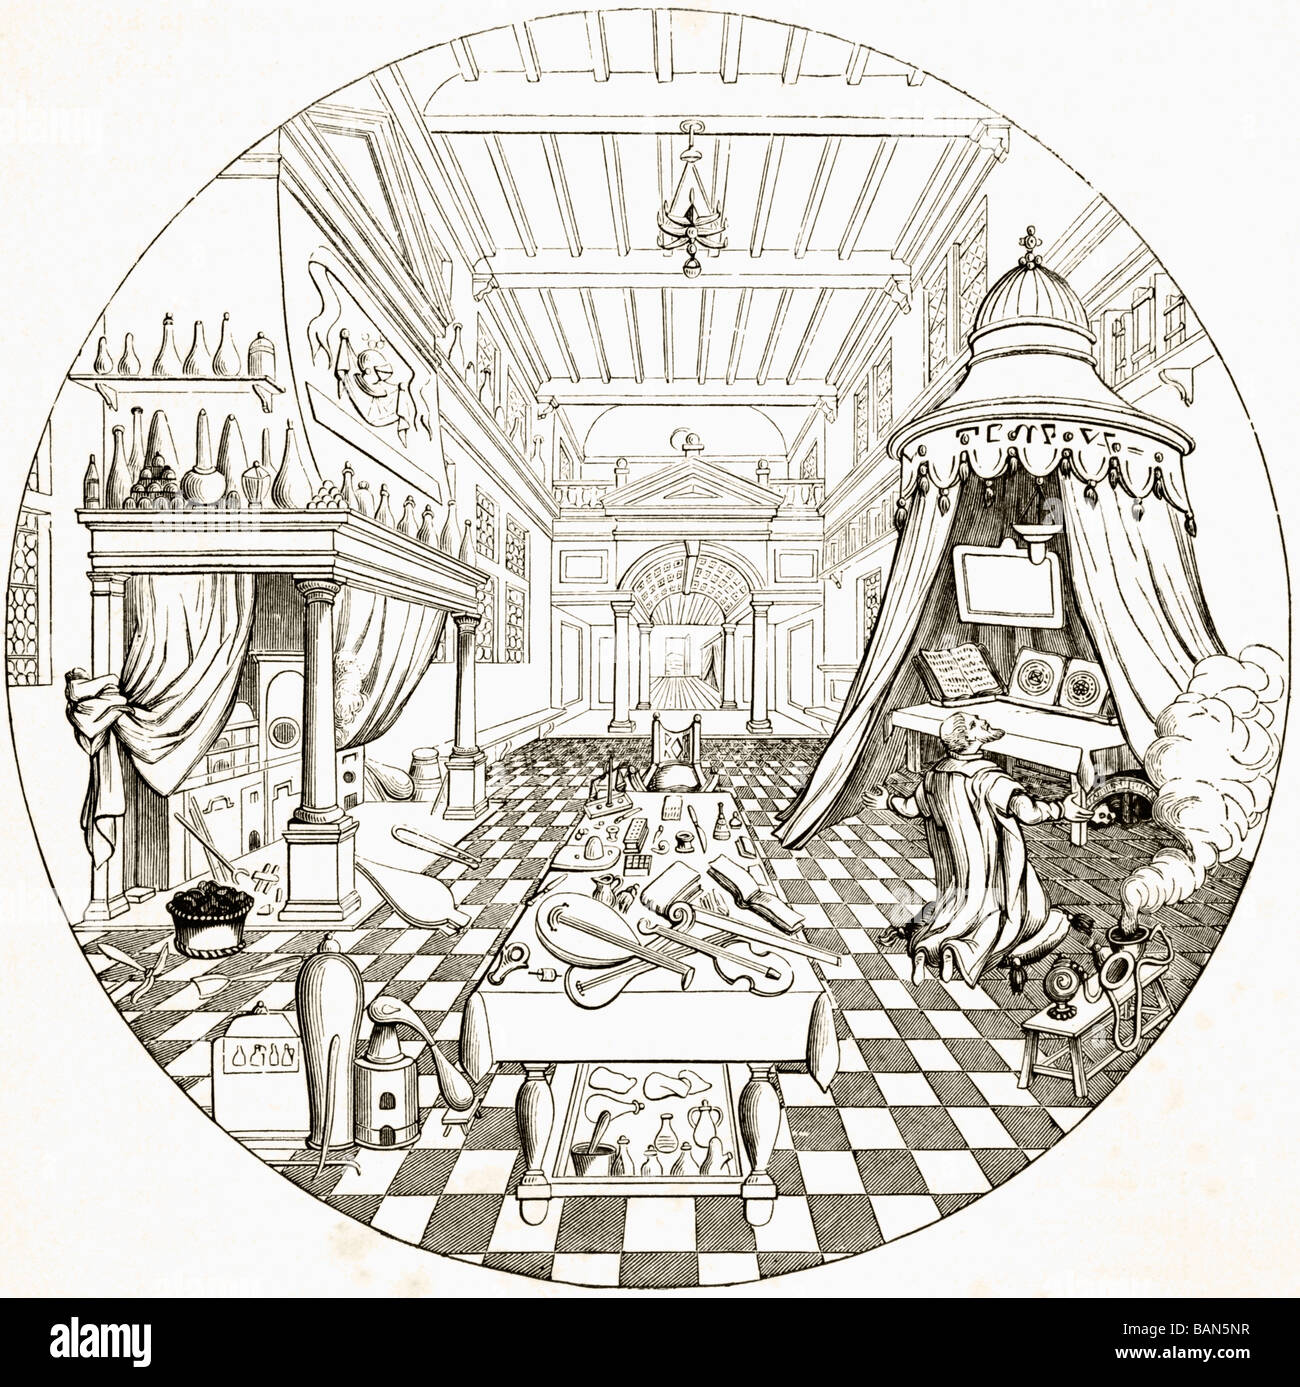 The Alchemist, after an engraving by Vriese in The Cabinet of Designs. - Stock Image